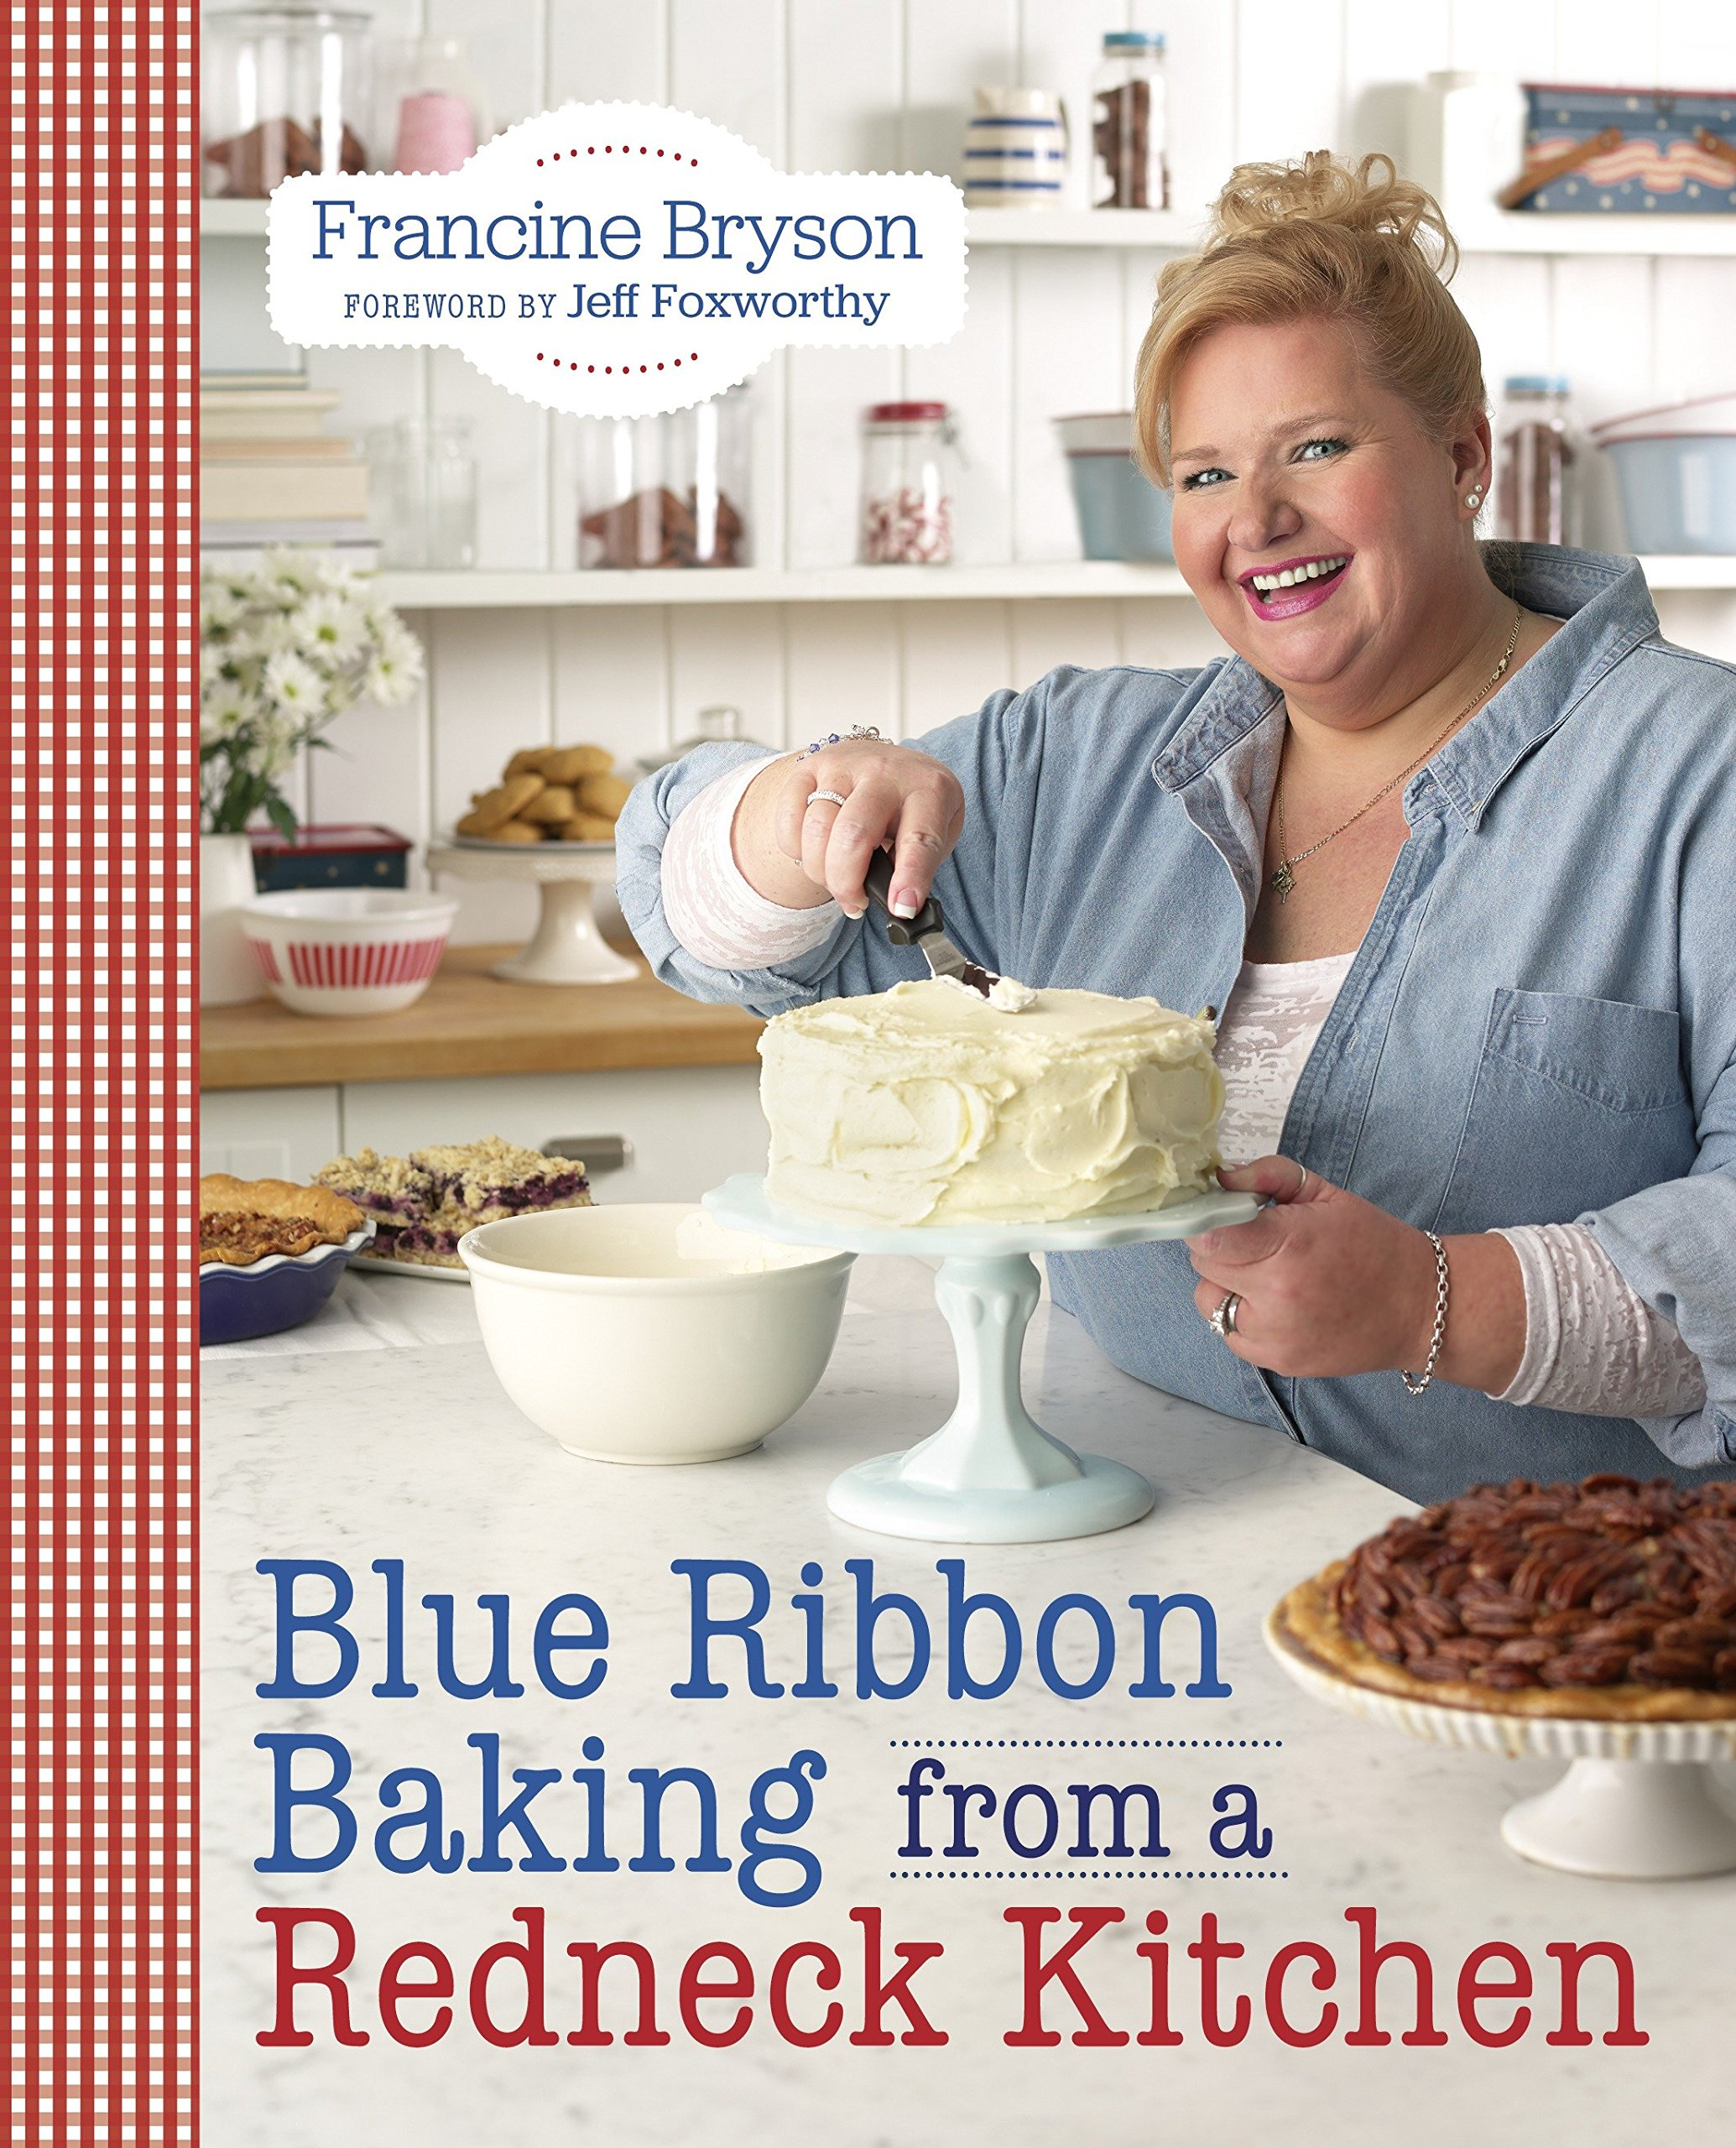 Blue Ribbon Baking from a Redneck Kitchen PDF